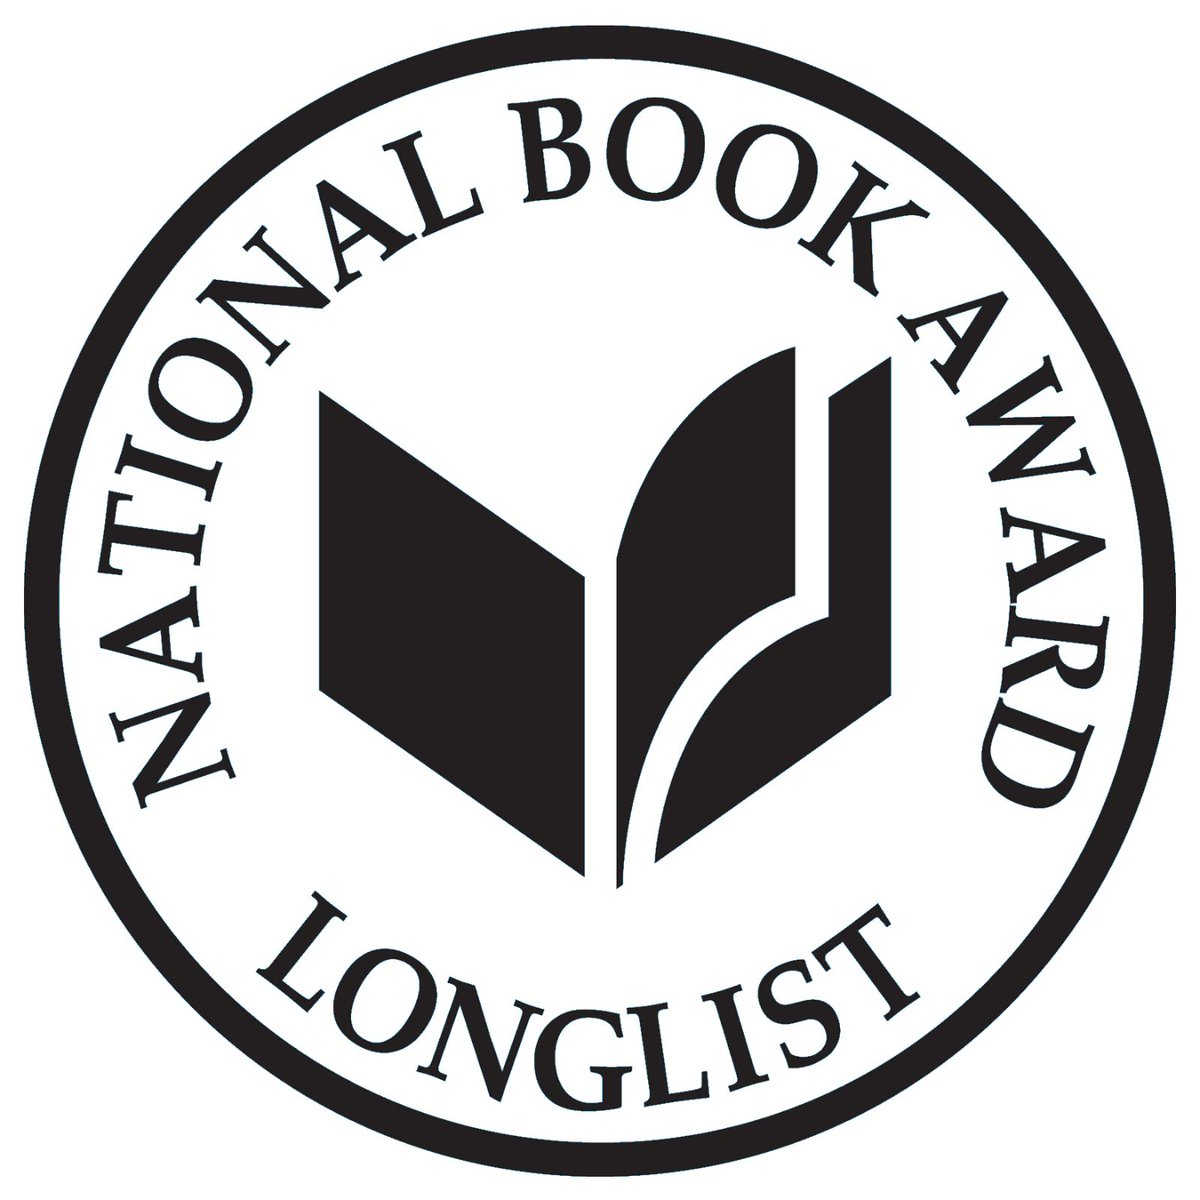 We have all the 2019 National Book Awards longlists for you right here: ow.ly/cbpD50wiadl